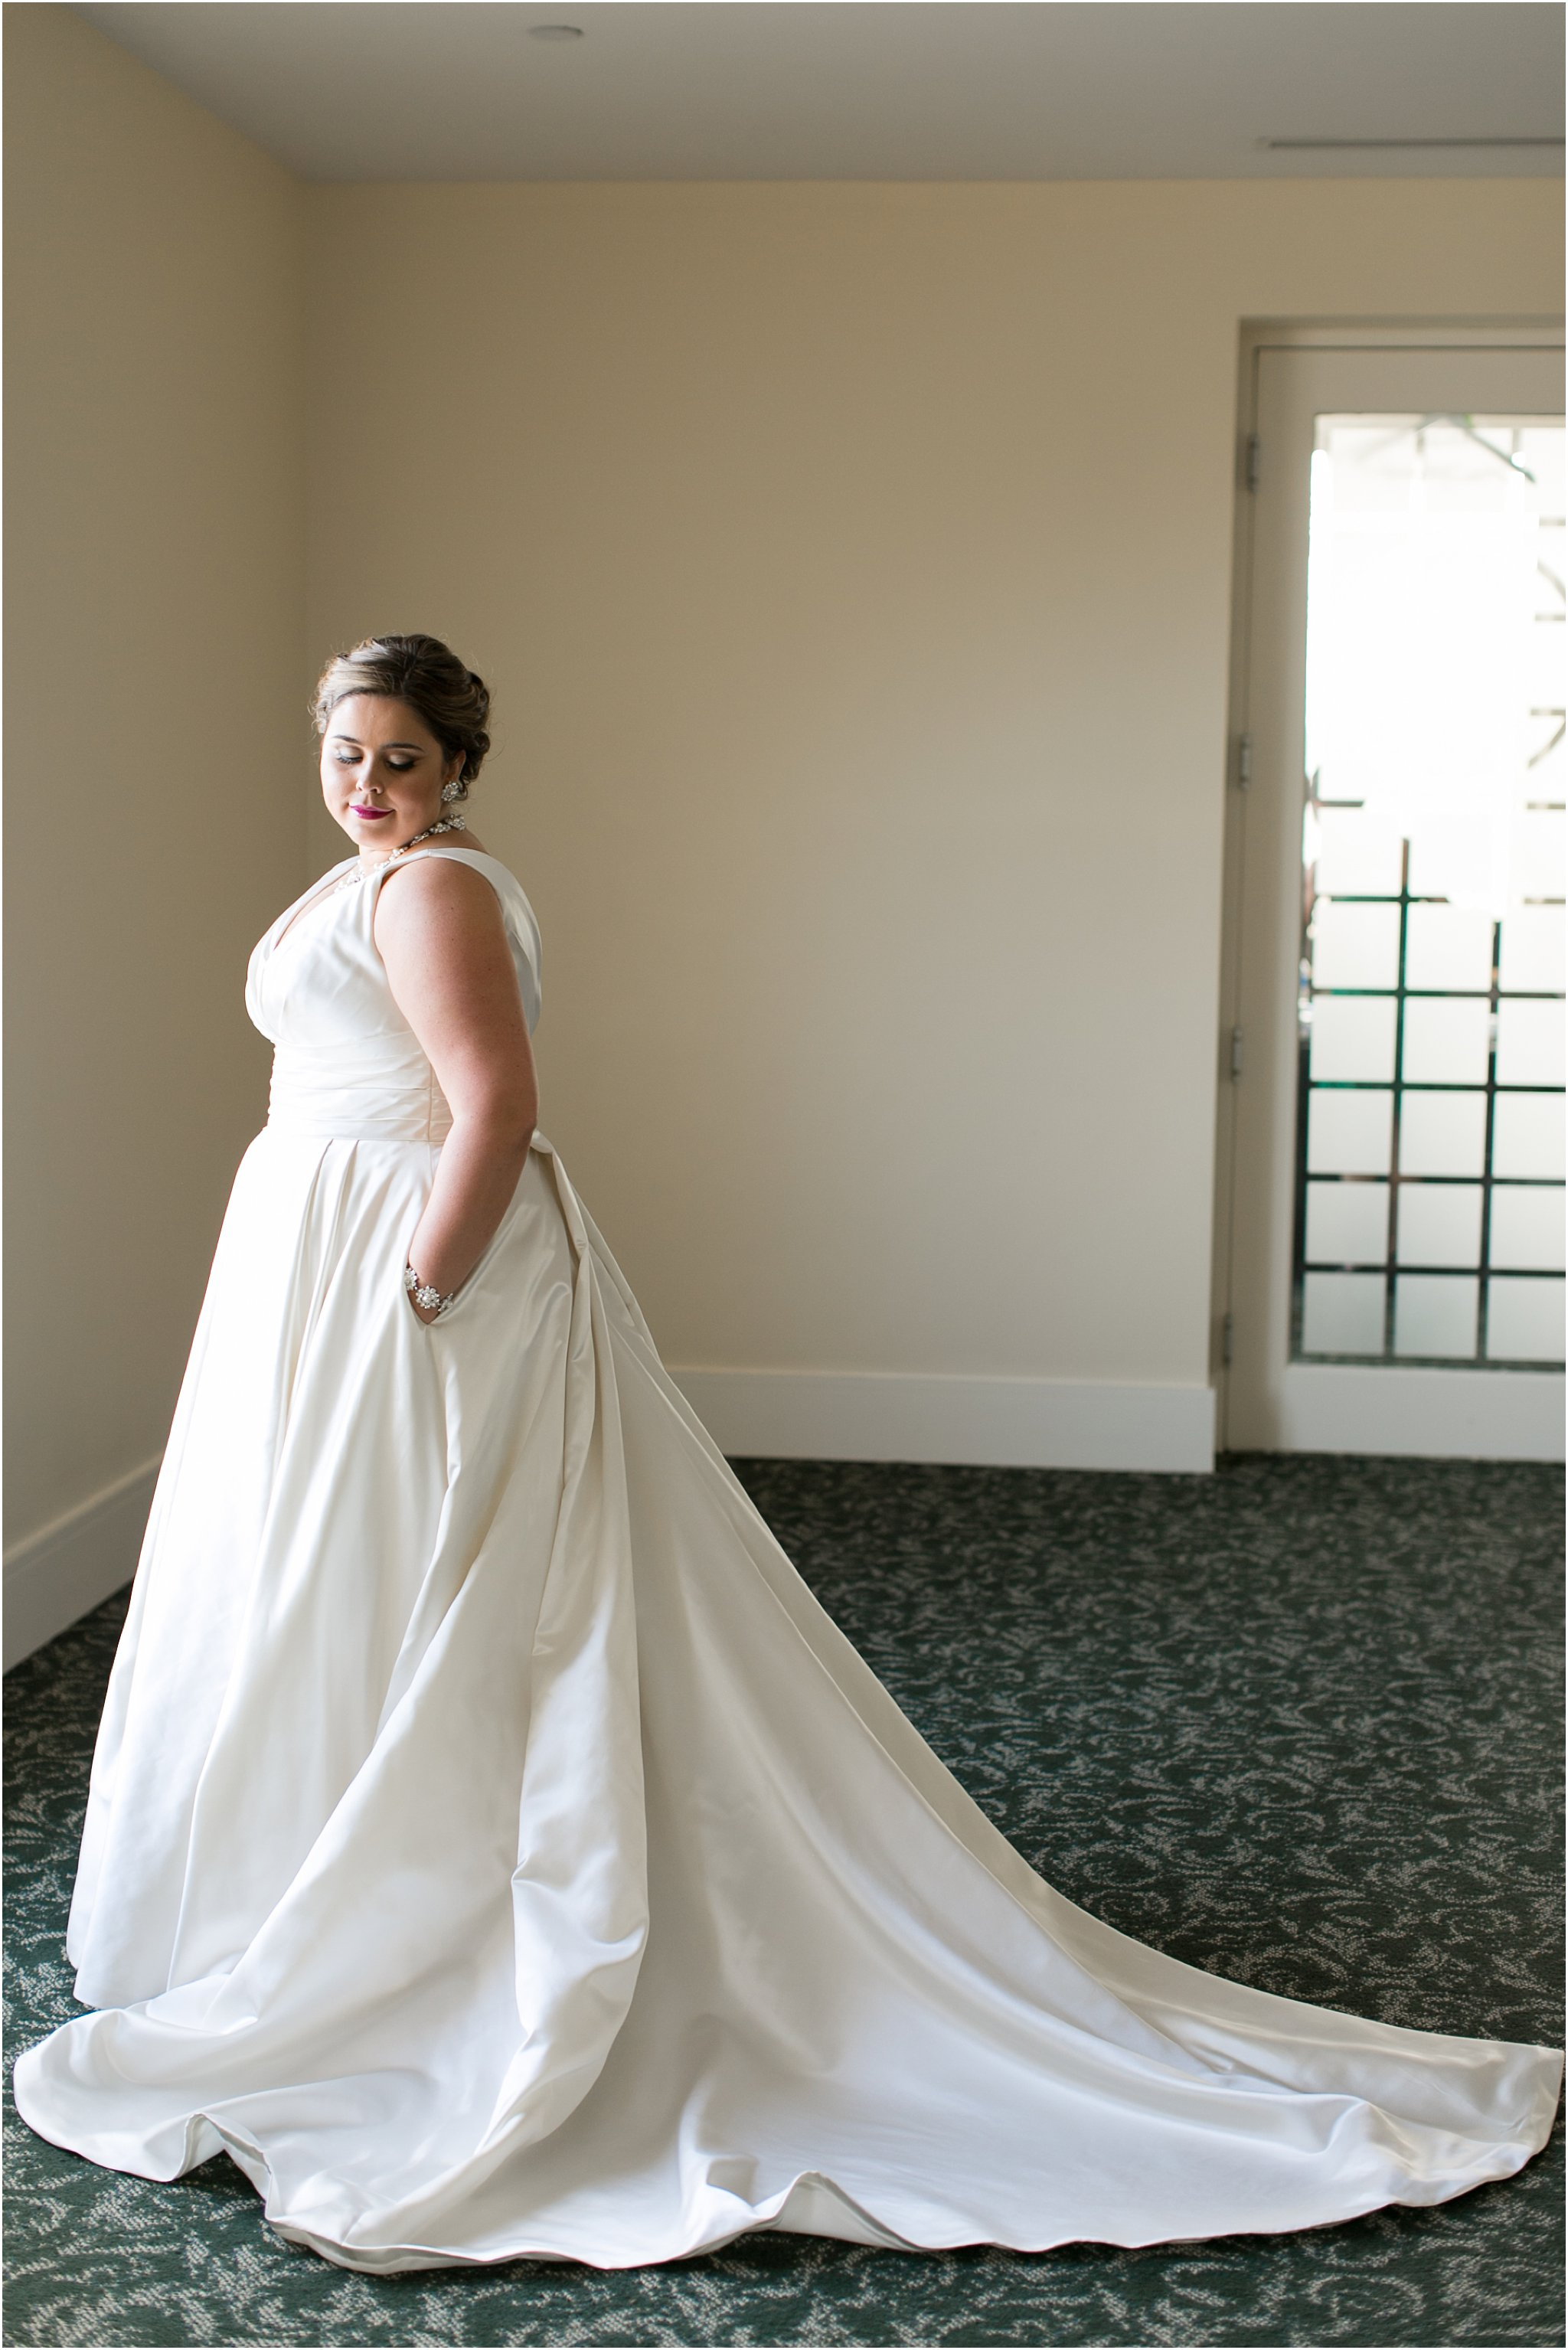 va_jessica_ryan_photography_virginia_wedding_norfolk_harrison_opera_house_norfolk_arts_district_portraits_3768